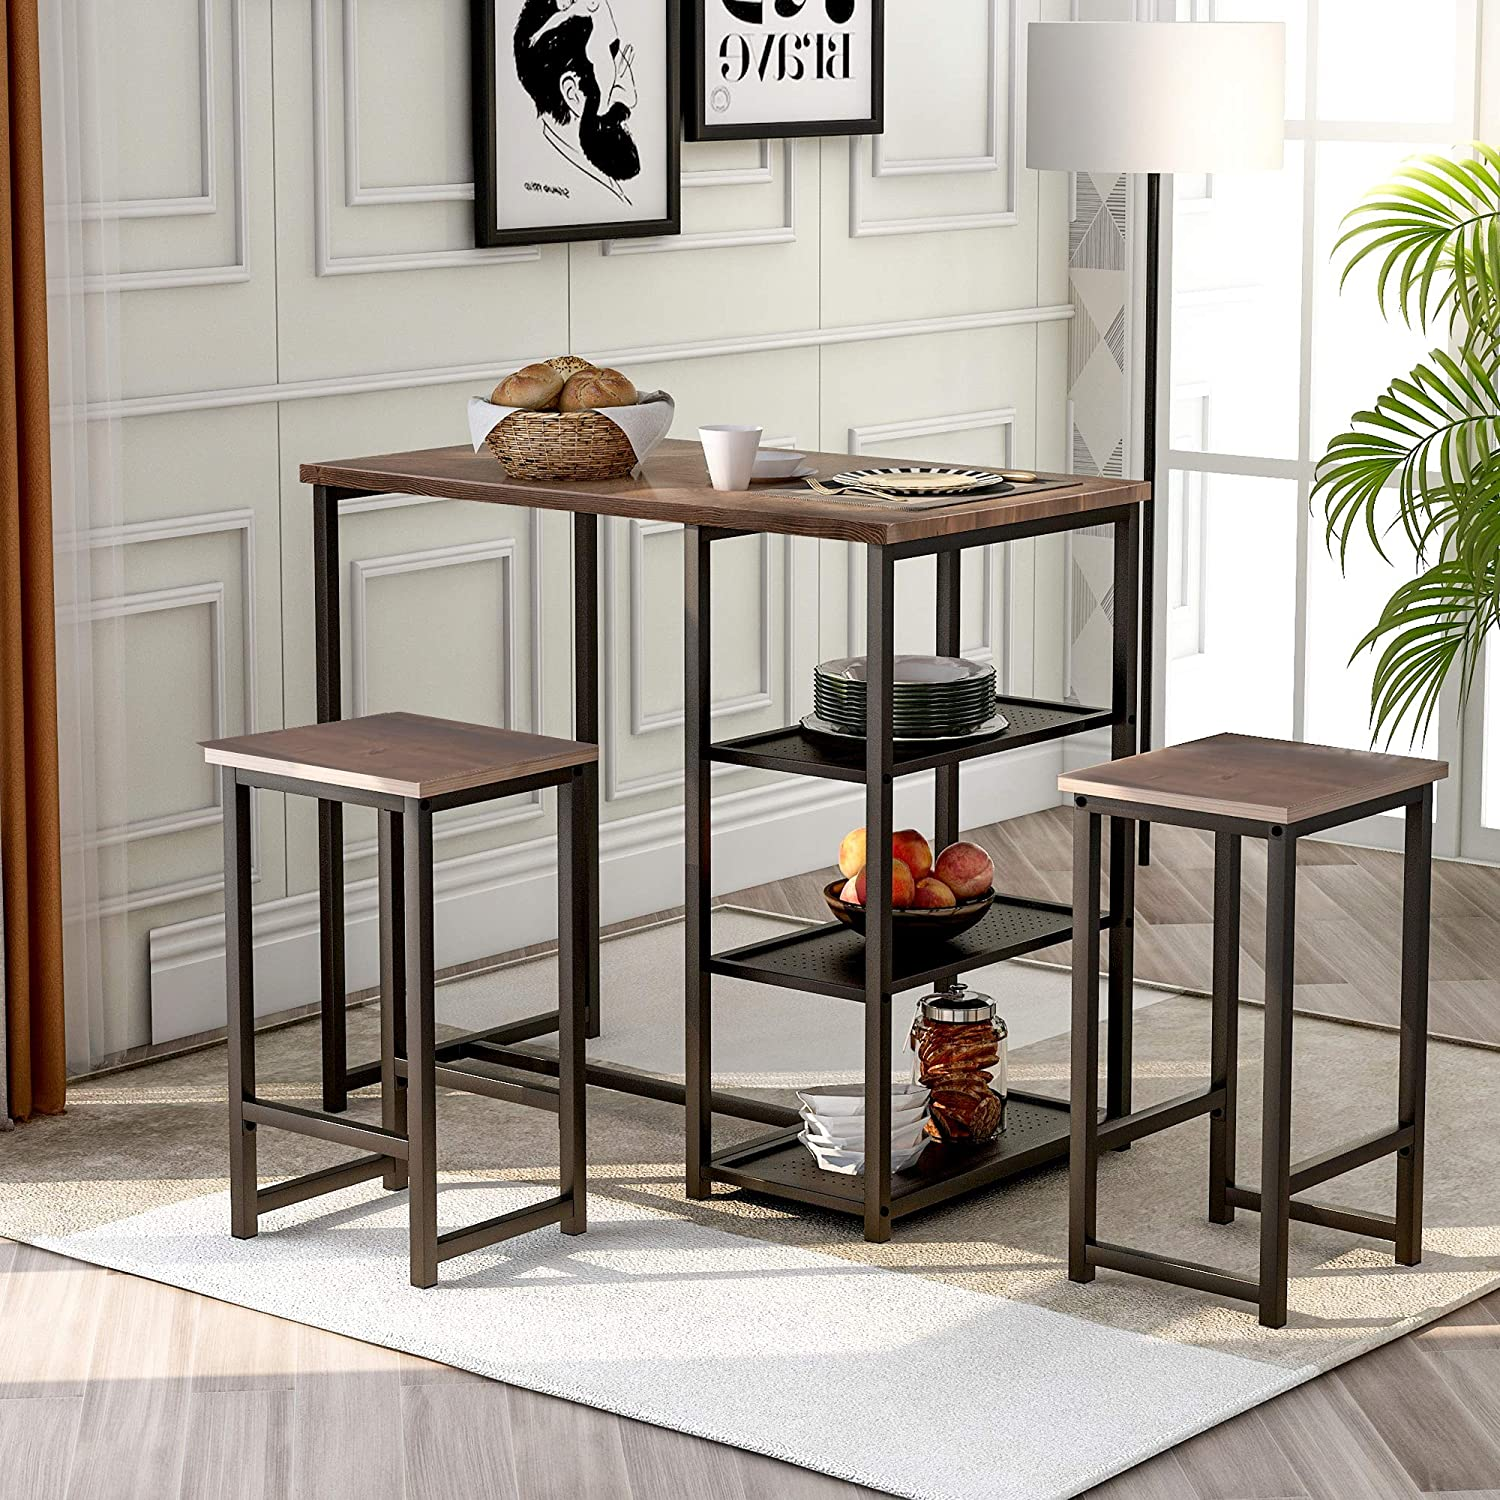 Amazon Com 3 Piece Table Stool Set Counter Height Table With Storage Shelves Table And 2 Stools Home Kitchen Breakfast Table Set Brown And Black Table Chair Sets